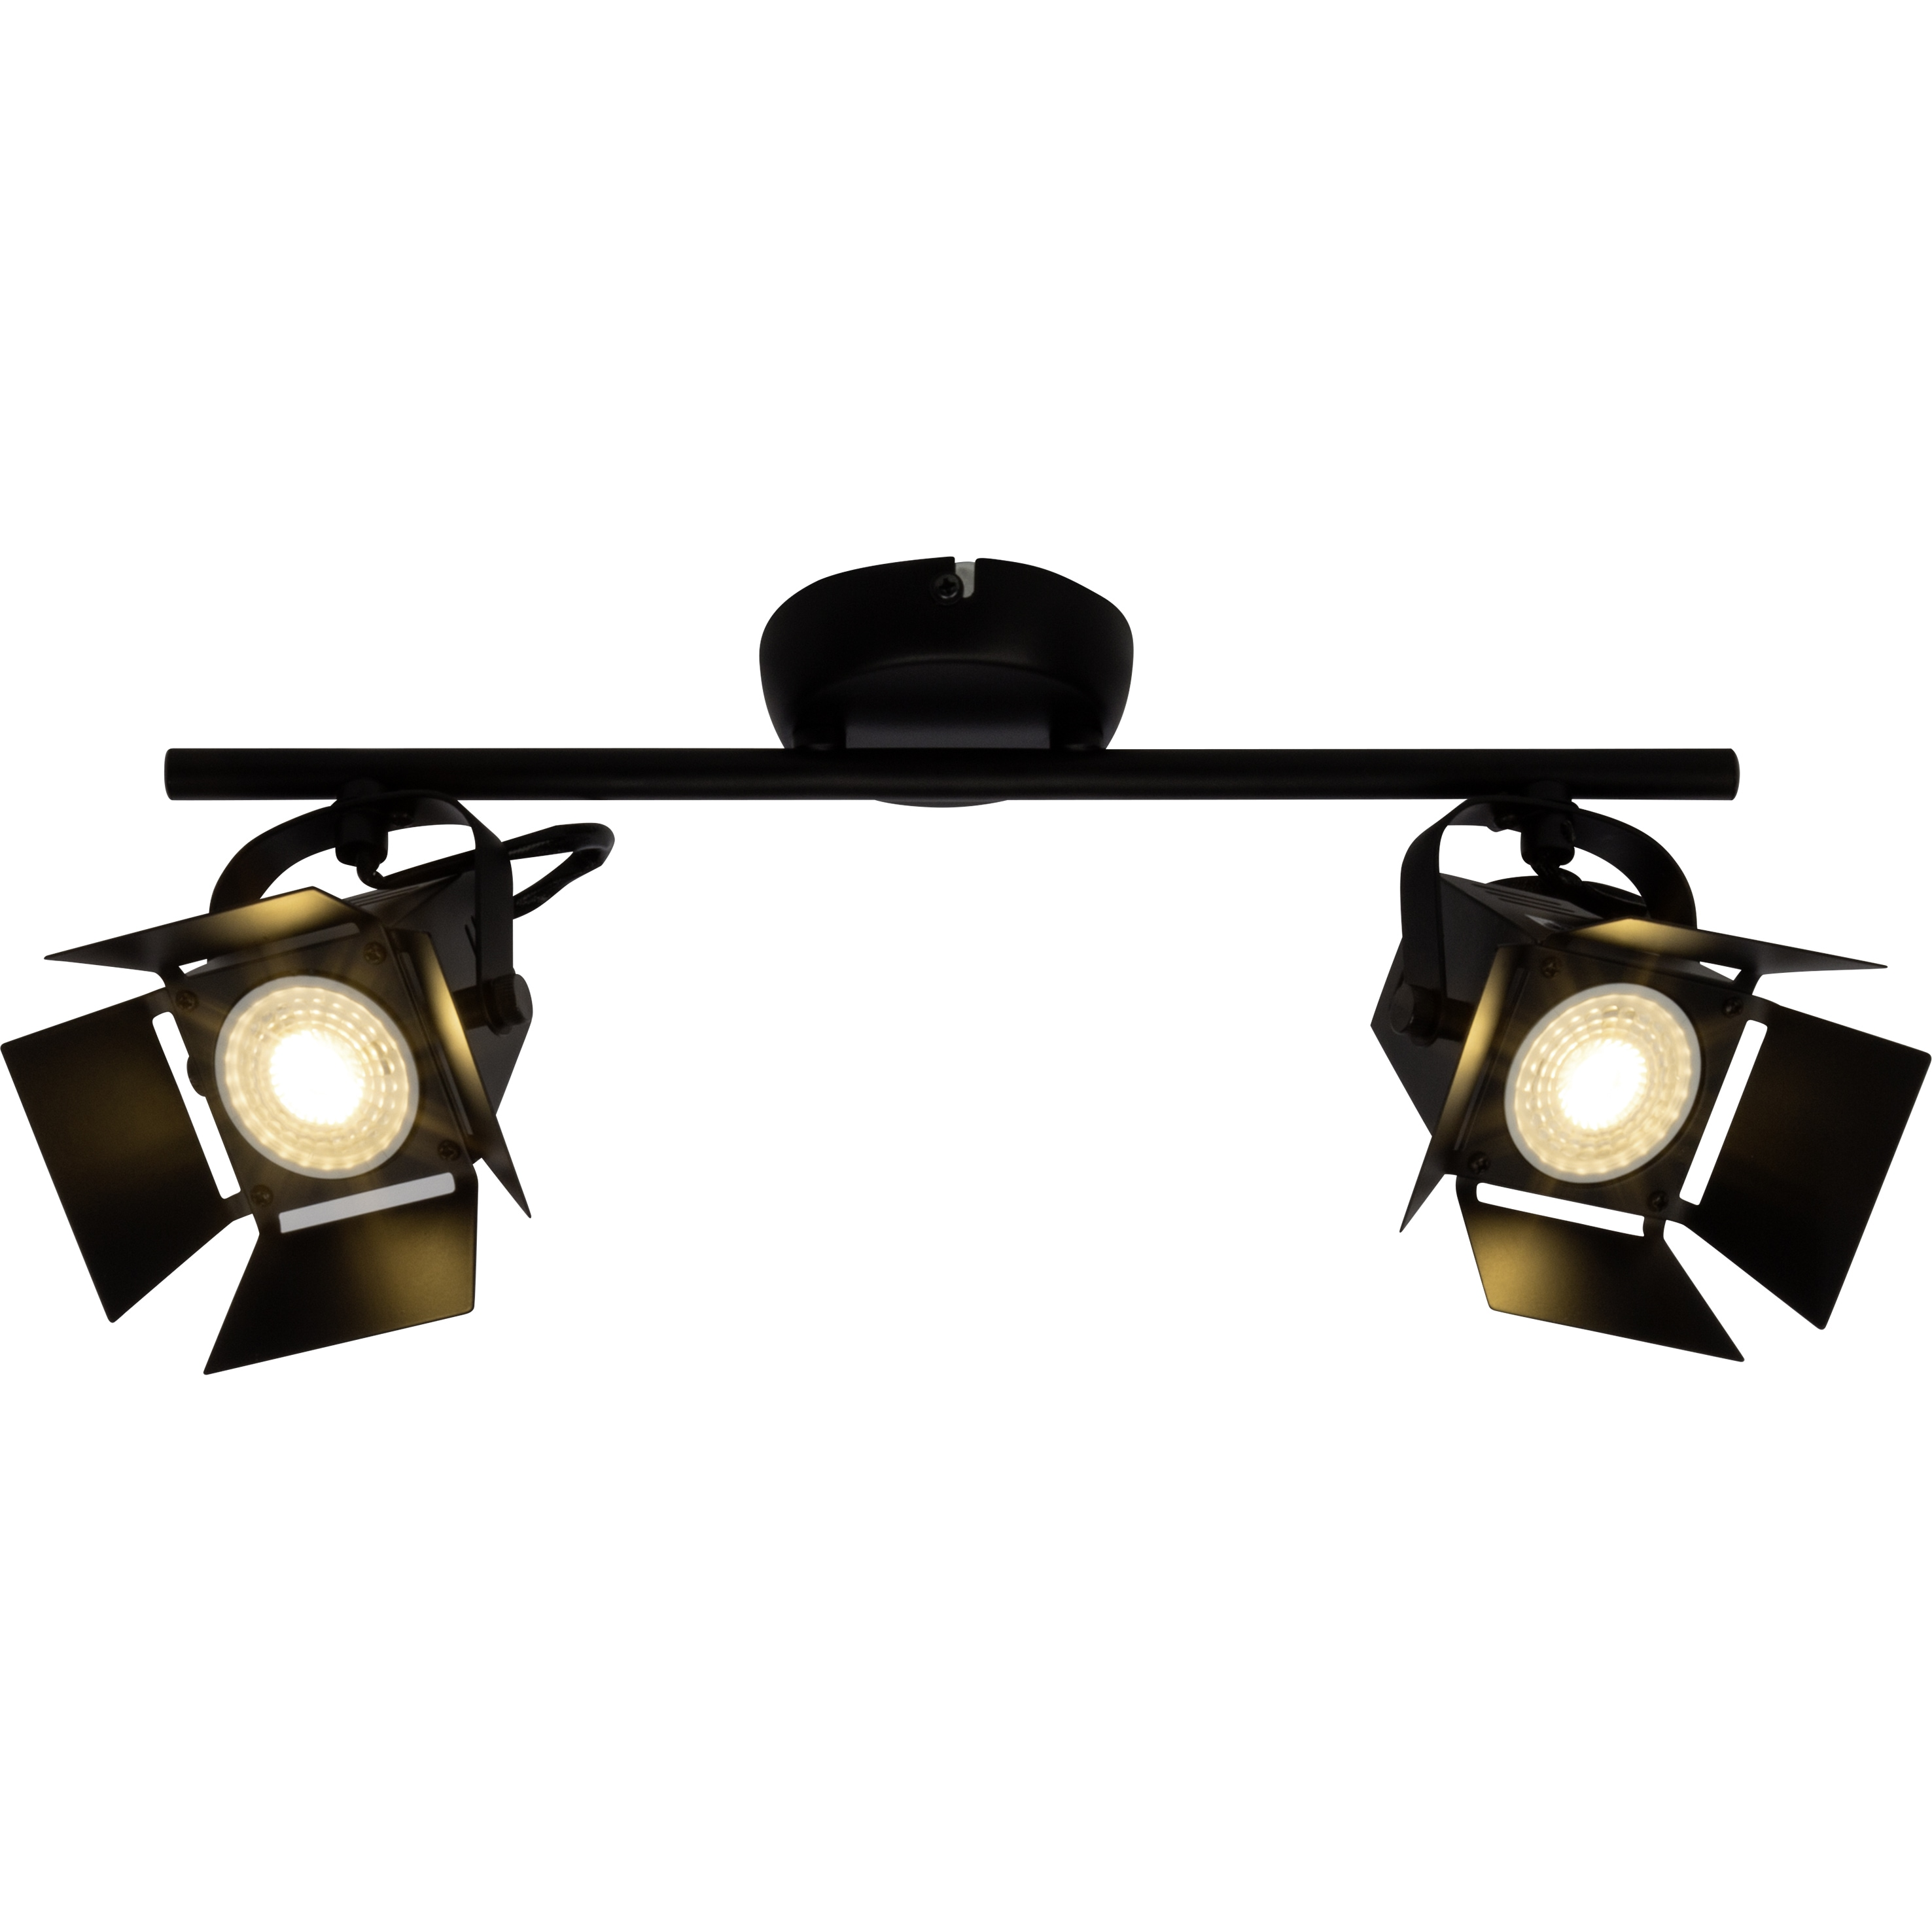 Brilliant Leuchten Movie LED Spotrohr 2flg schwarz matt